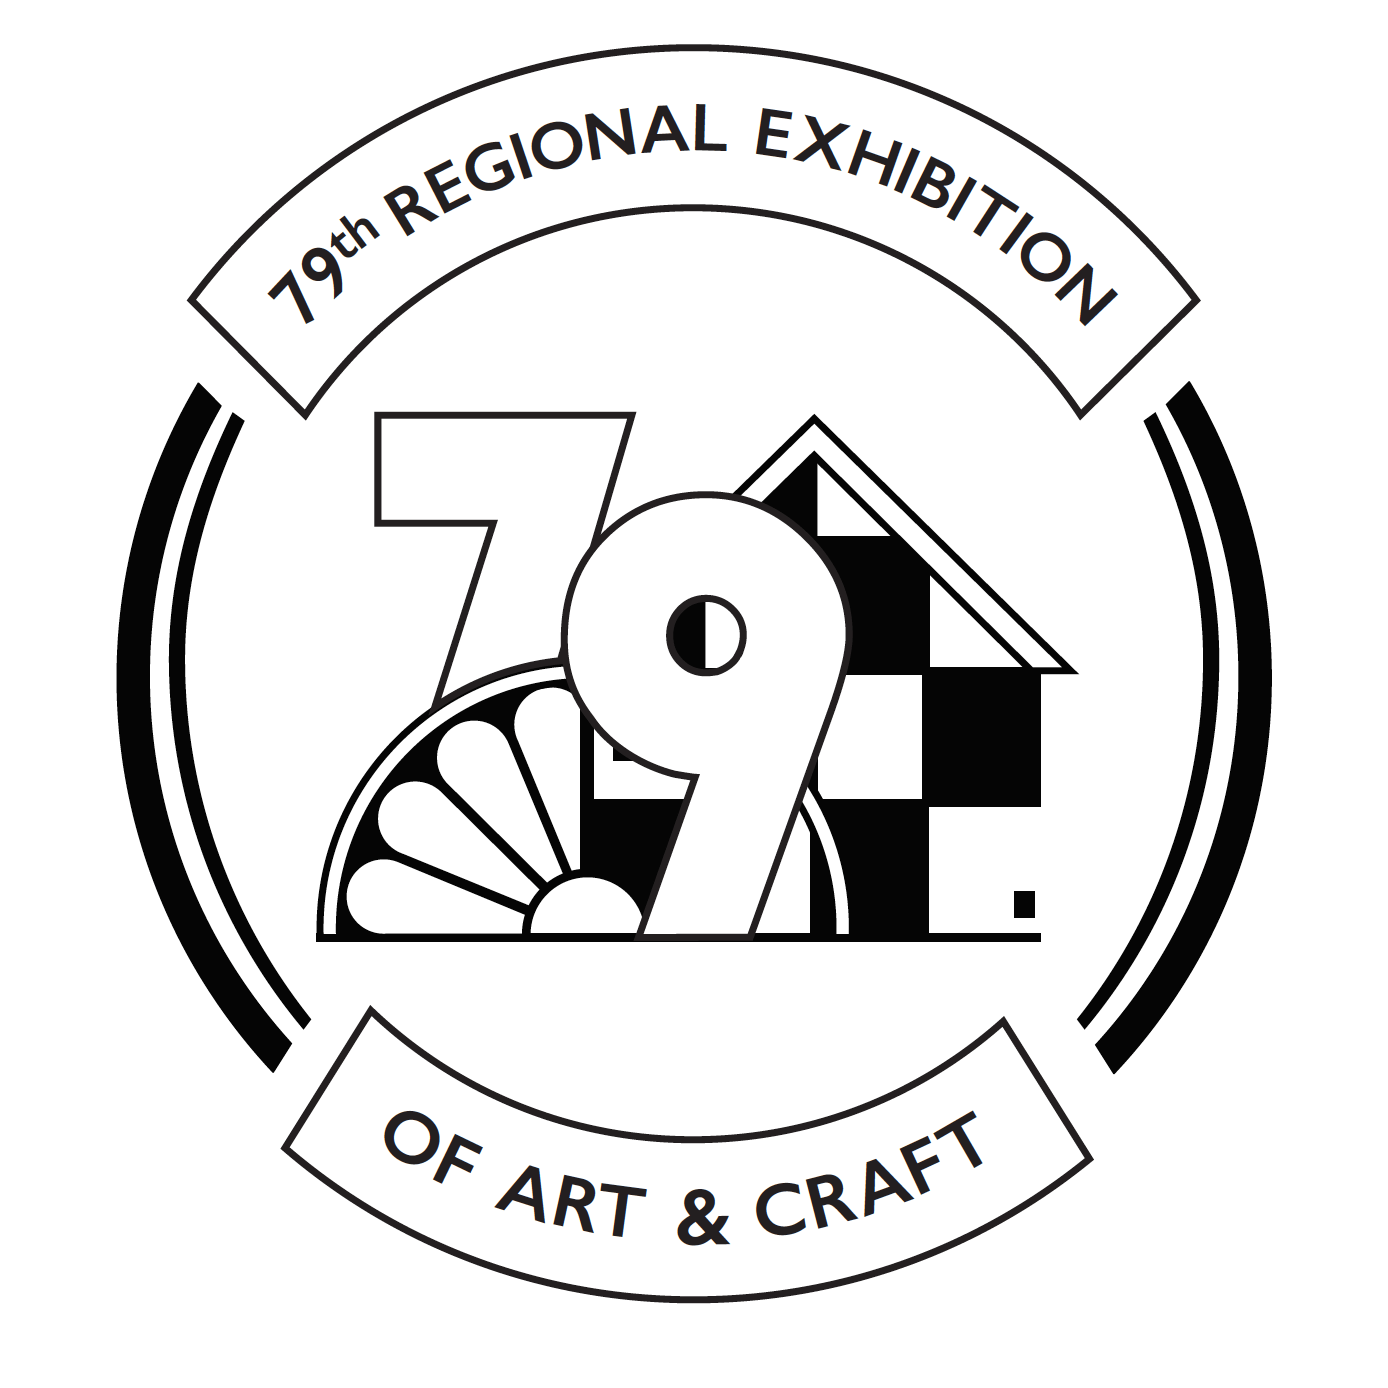 the-79th-regional-exhibition-of-art-and-craft